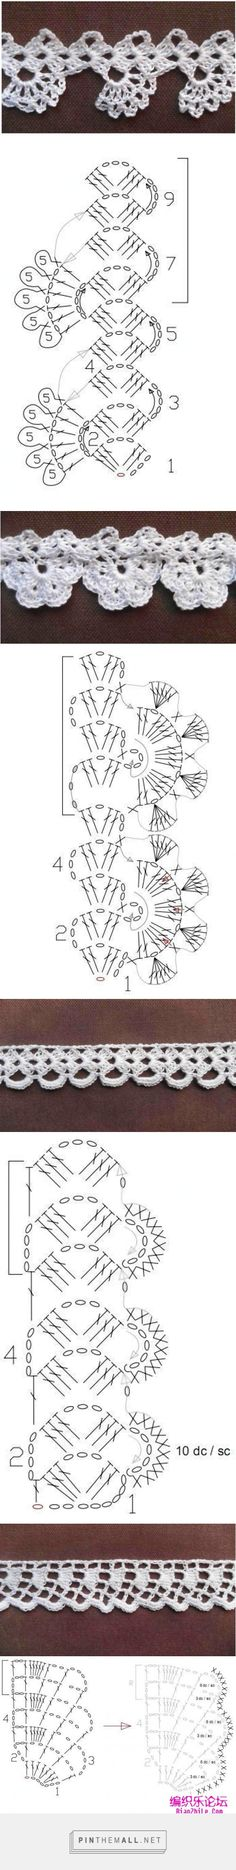 Pretty, simple and quick crochet lace edgings: charts and samples by MyPicot; originally from the Home Work book, published 1891.